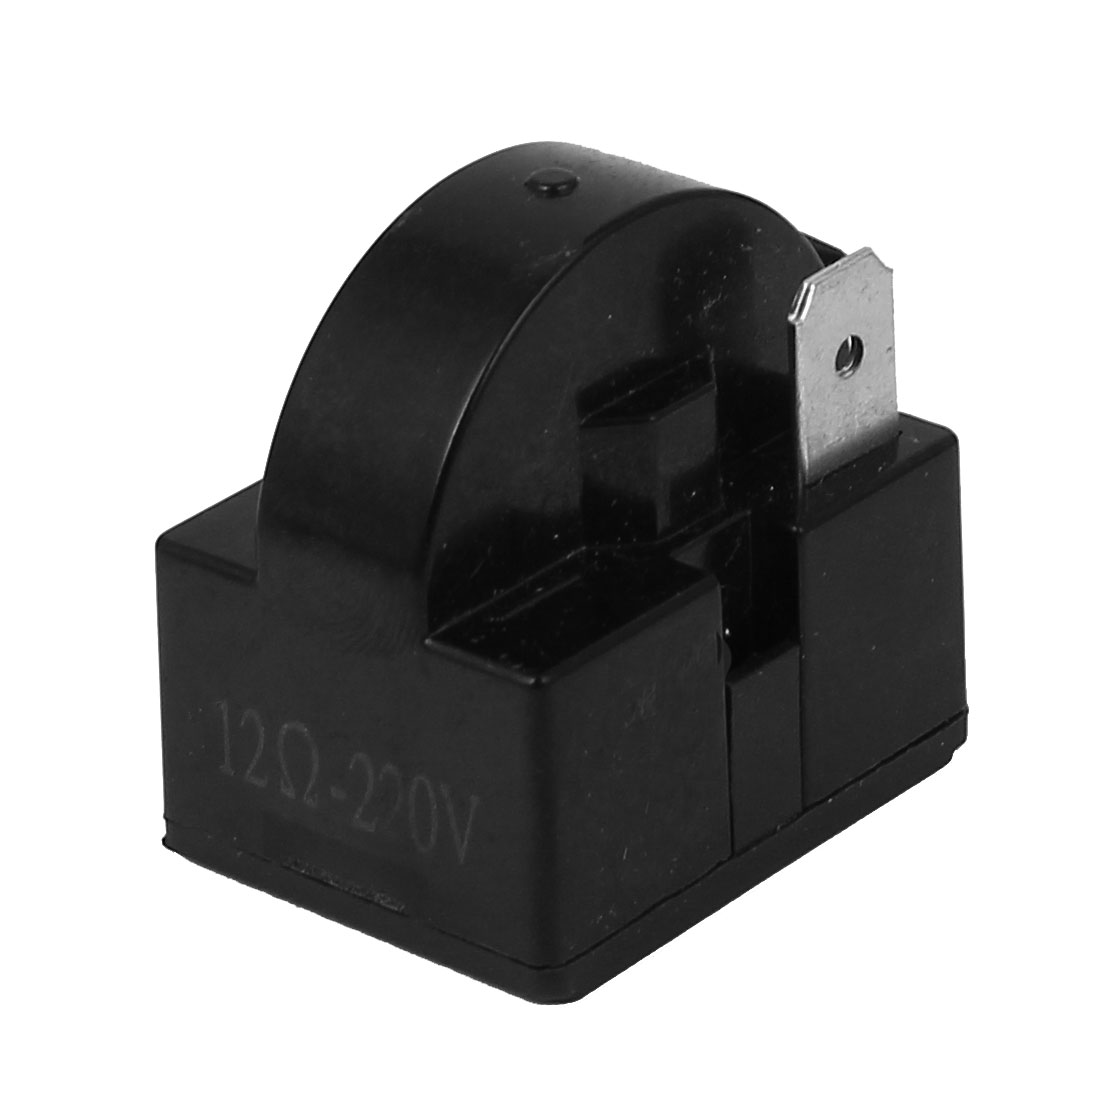 Plastic Shell 12 Ohm Resistance 2 Terminals Refrigerator PTC Starter Relay Black